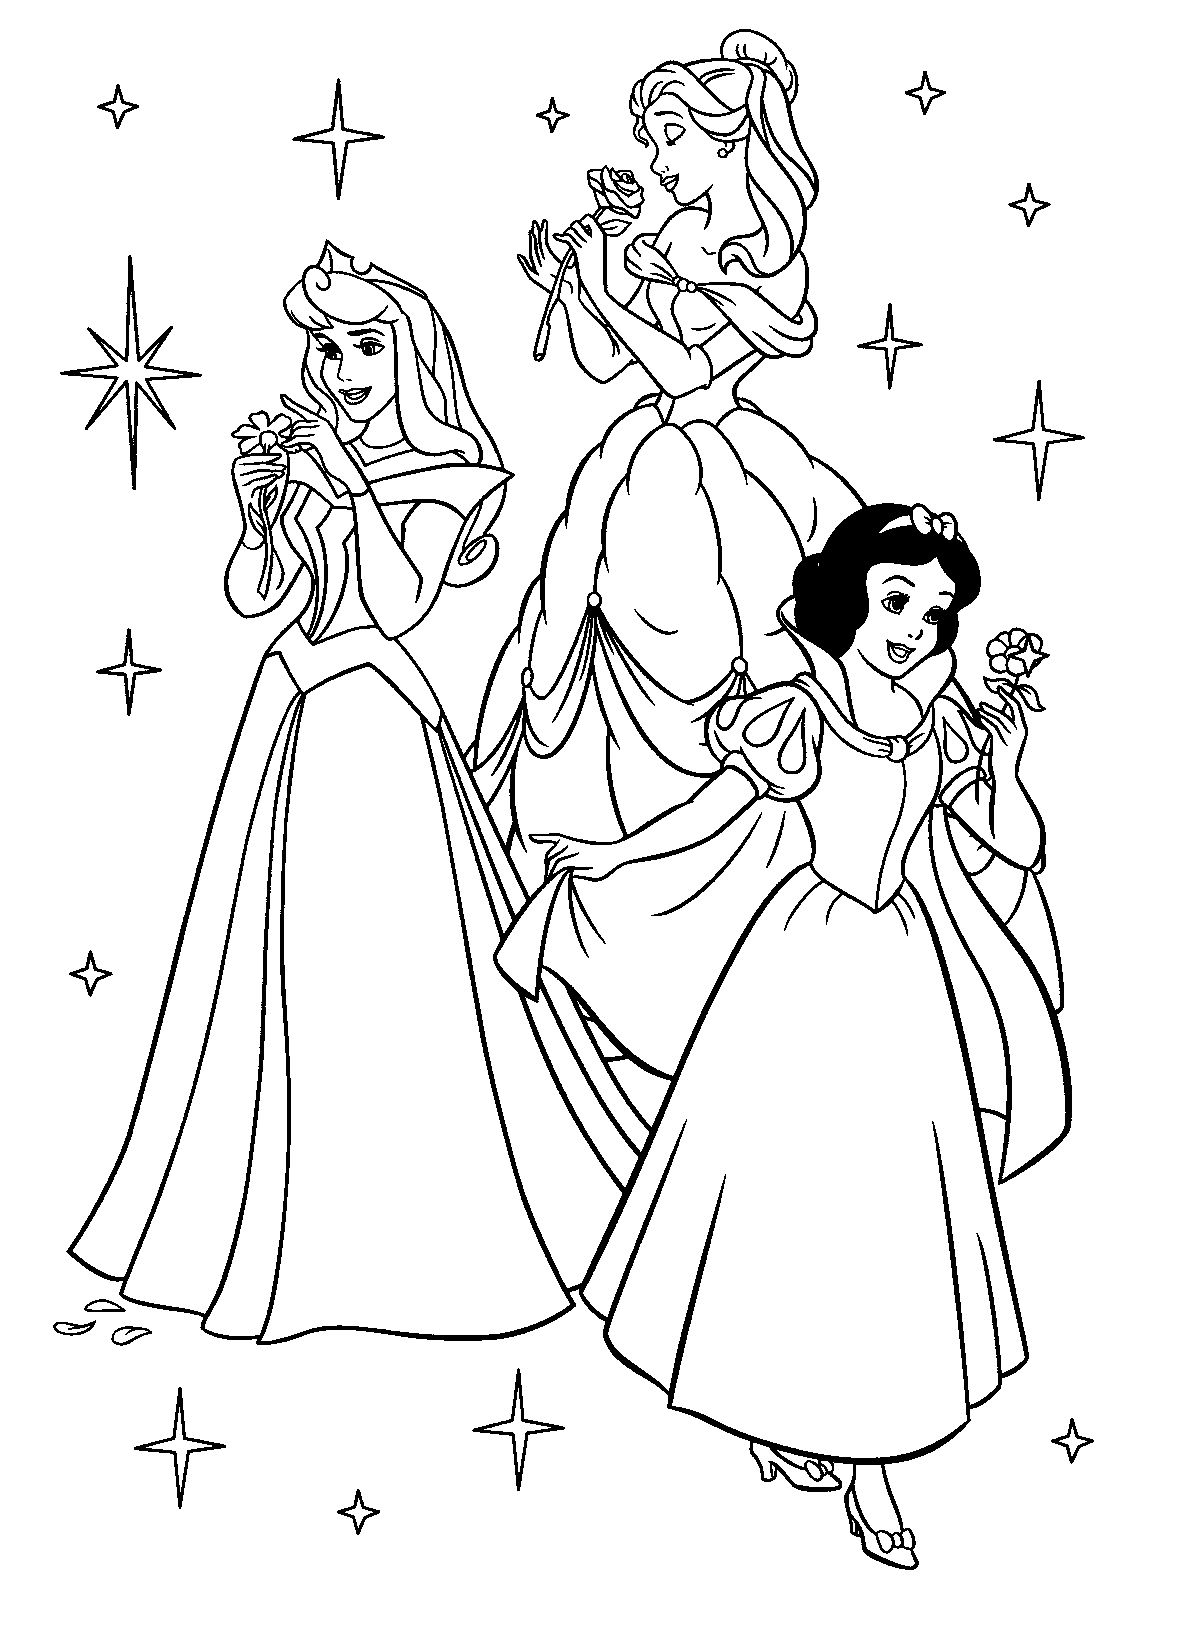 colouring pages for disney princesses disney princess coloring pages free printable for colouring pages disney princesses